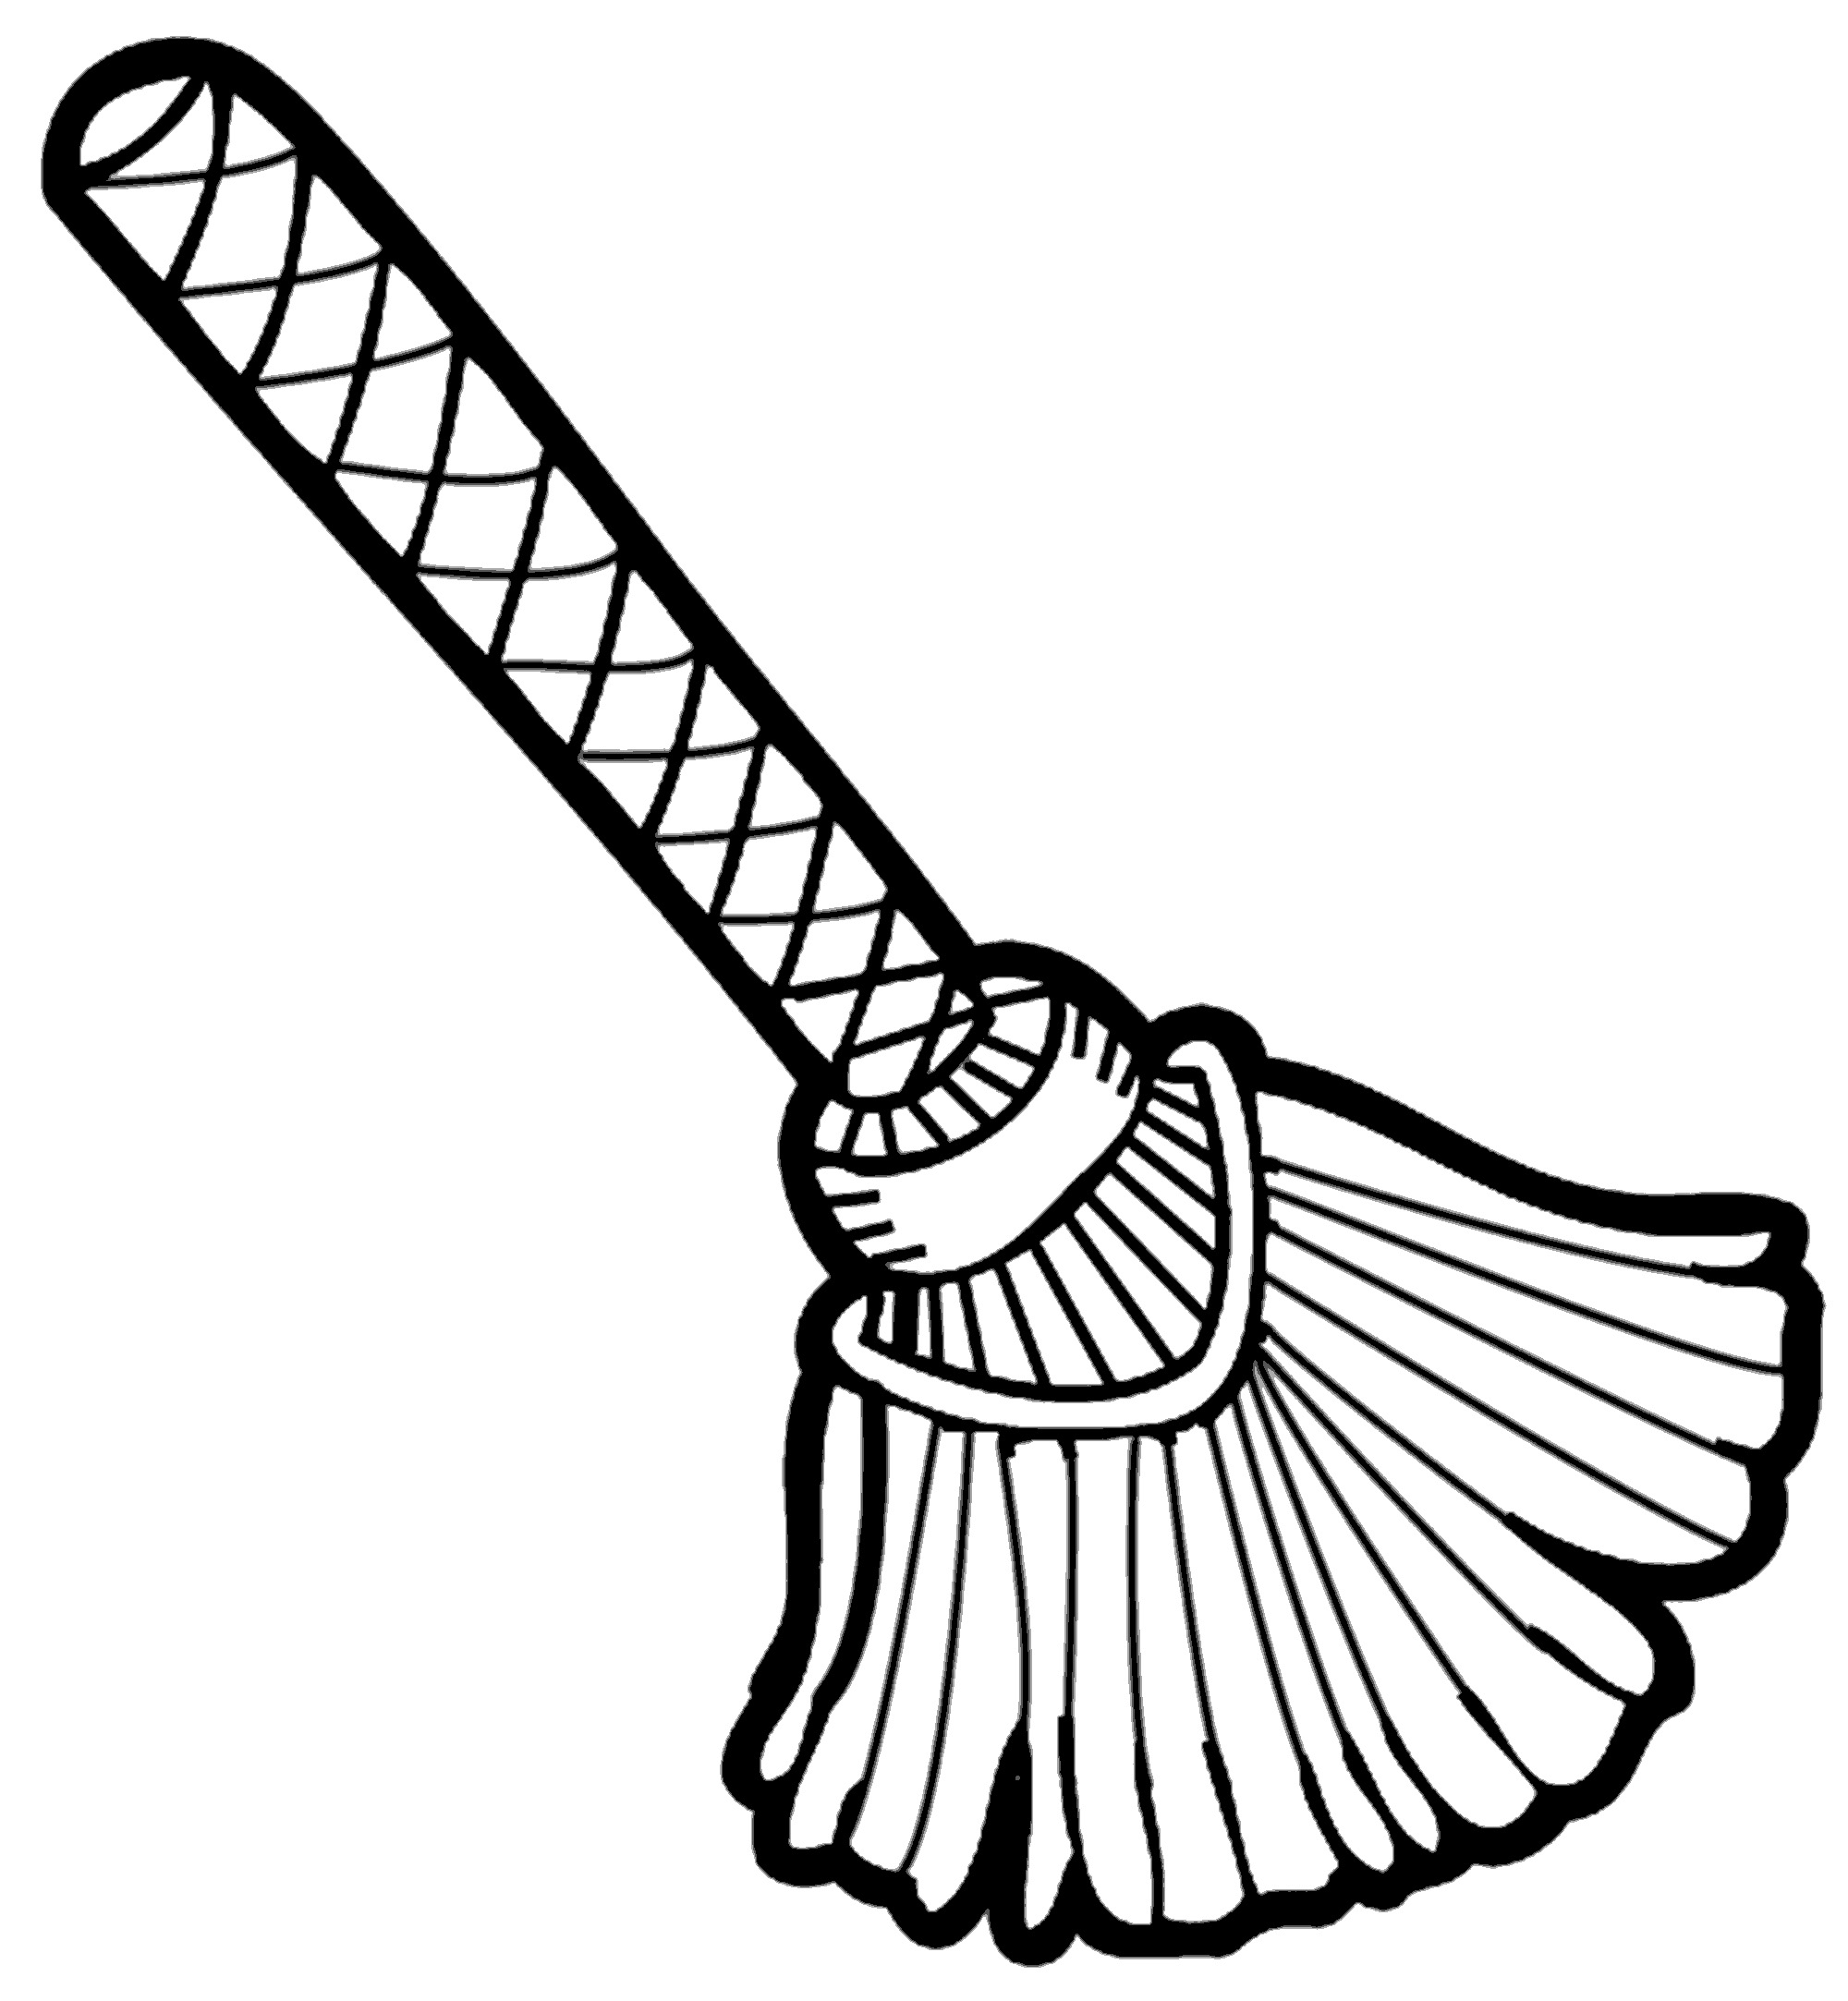 Black clipart broom Up Panda Free dust up%20clipart